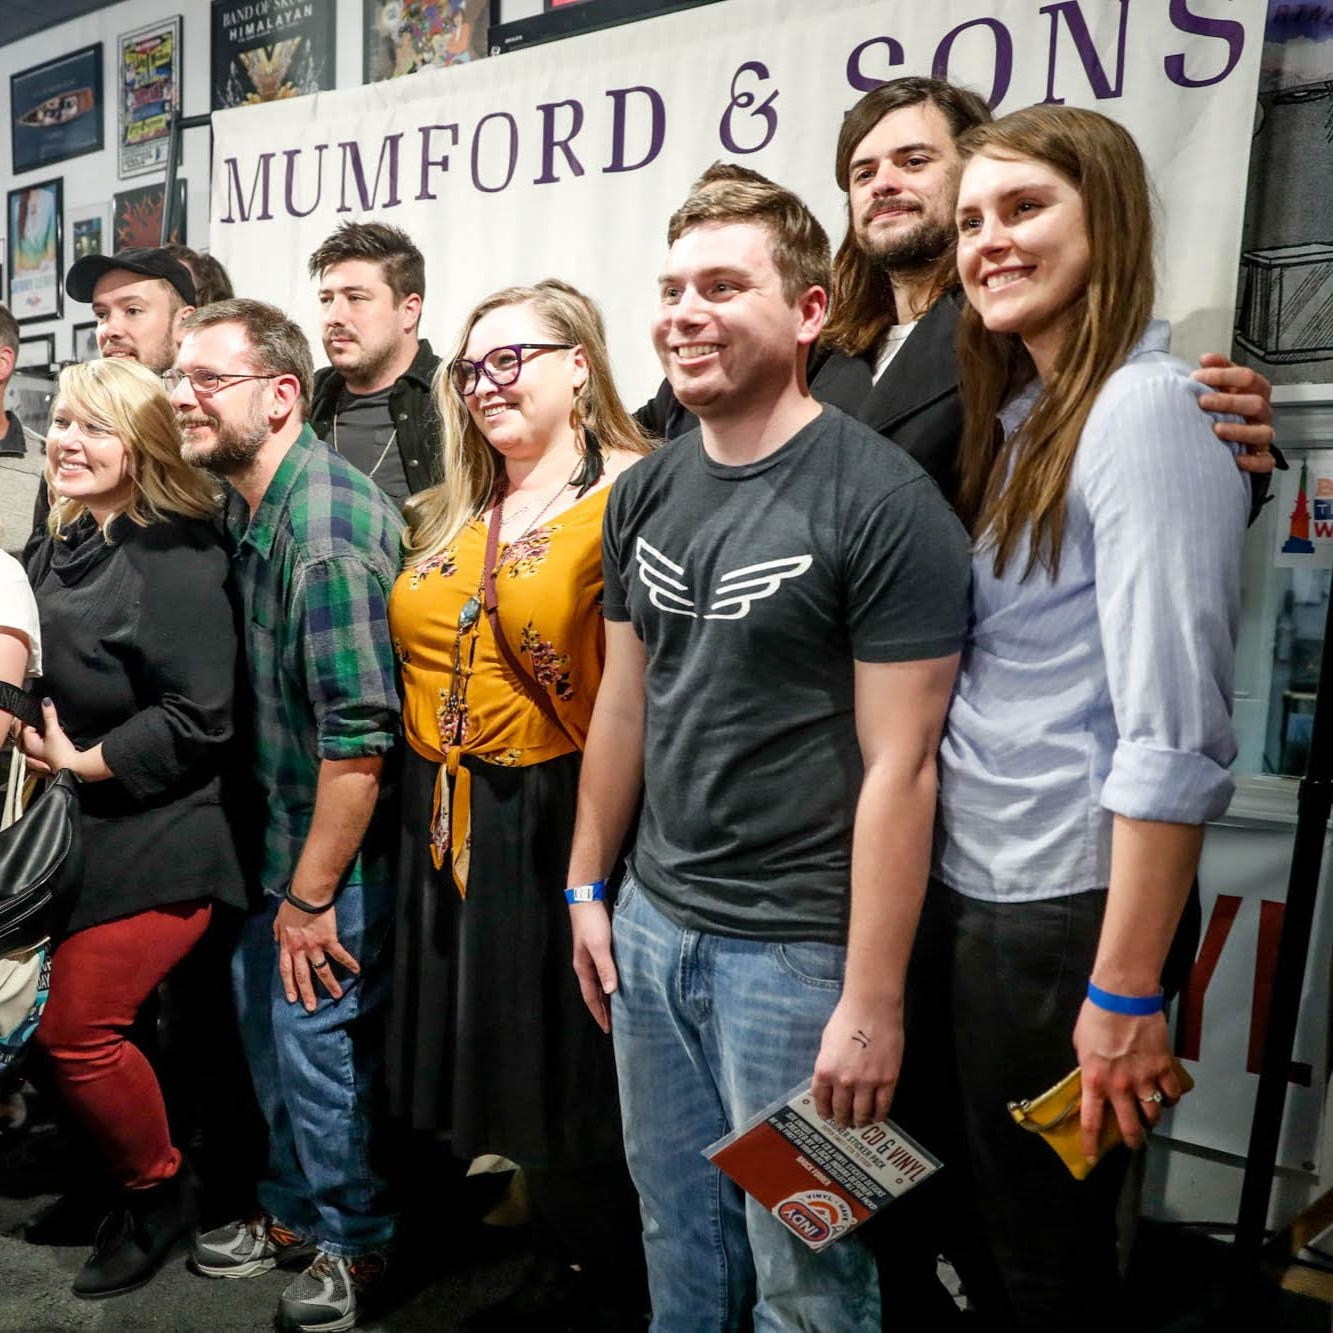 Mumford & Sons attract faithful fans at Broad Ripple's Indy CD & Vinyl